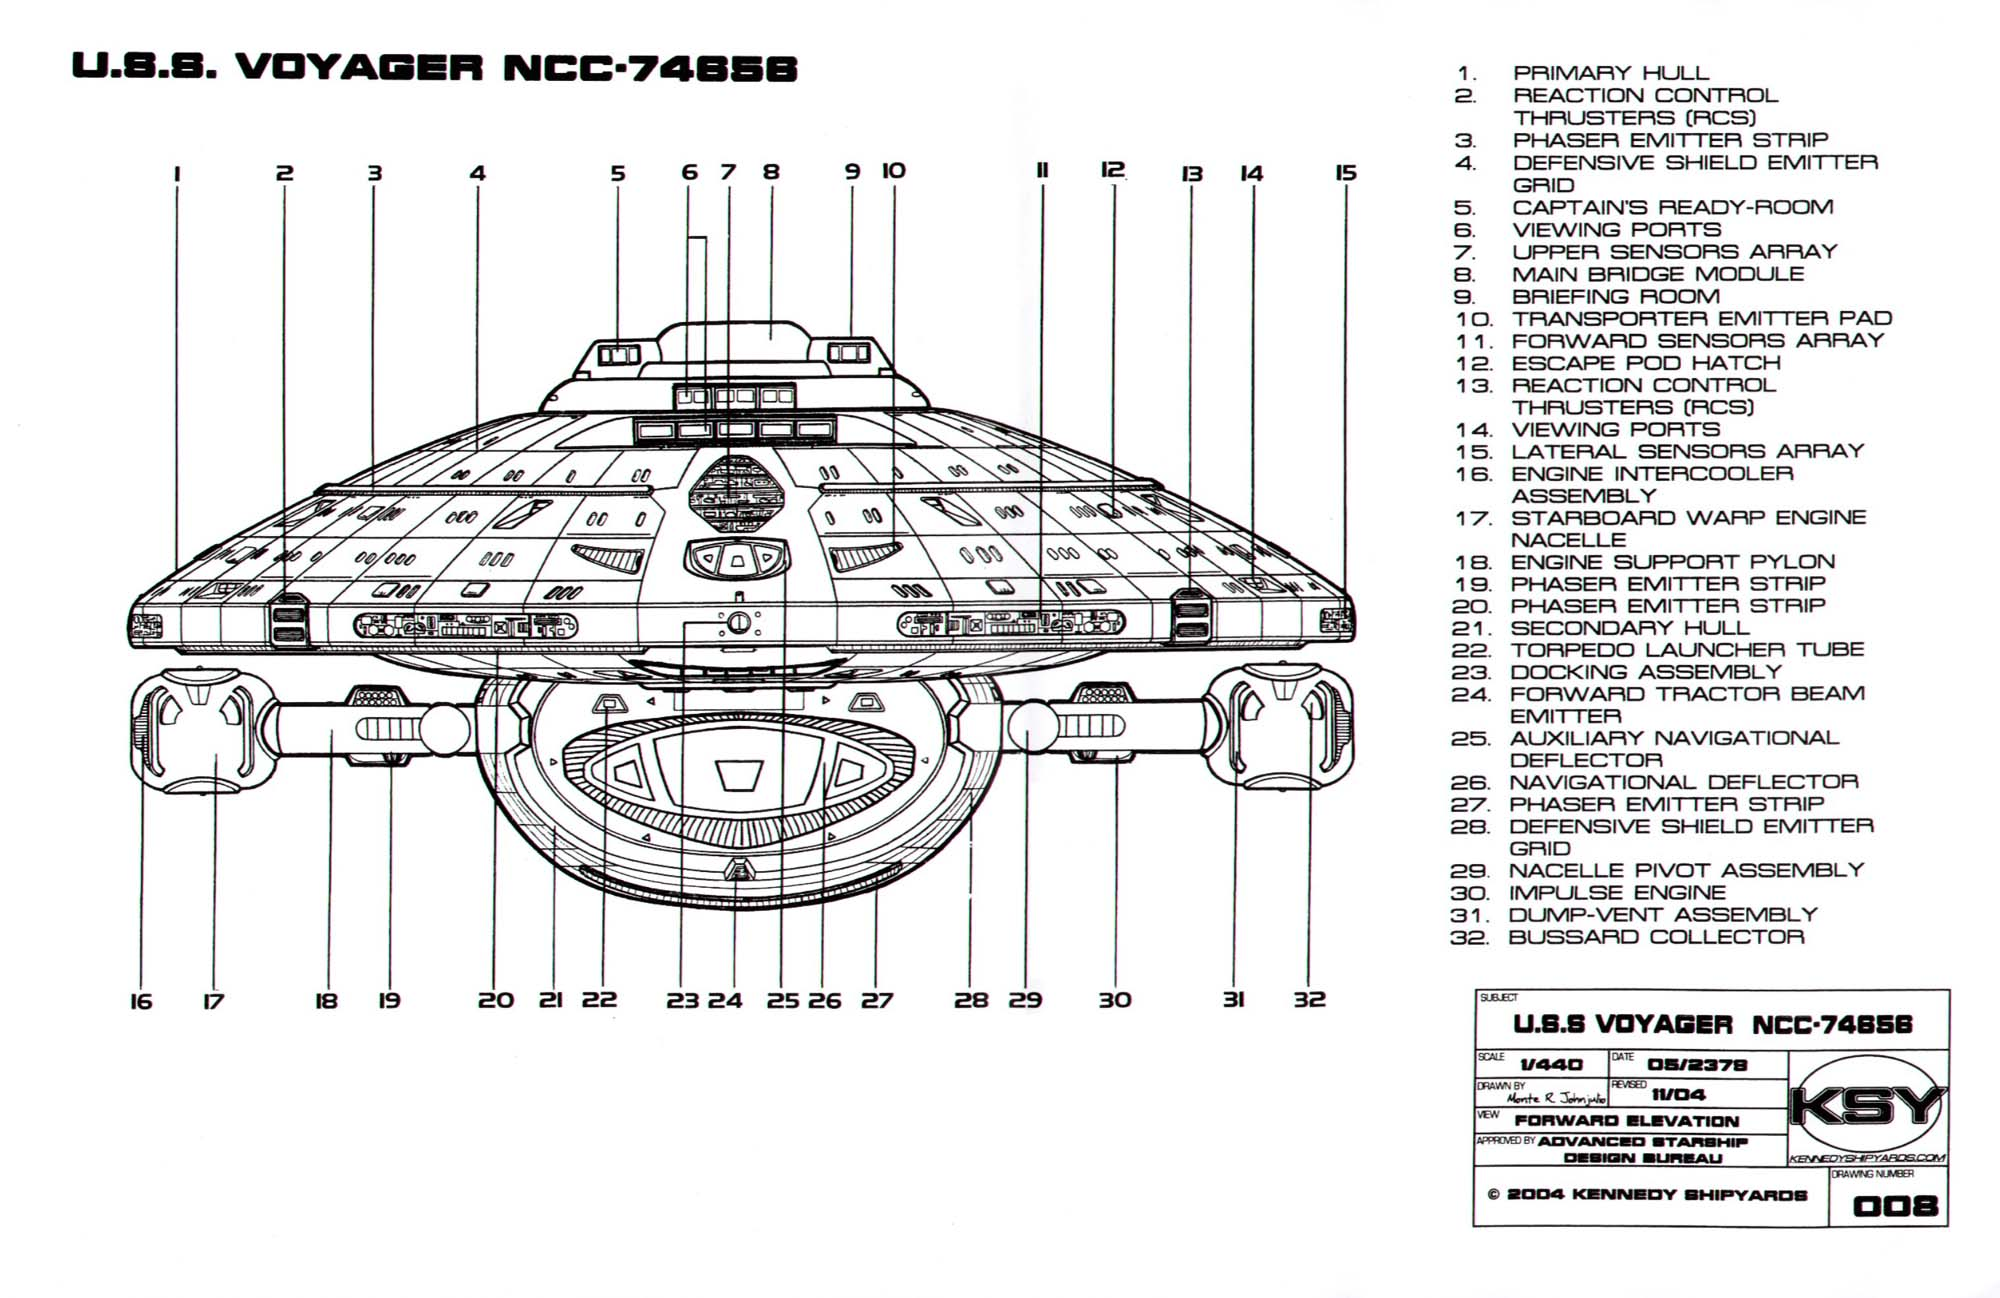 Advice On Modeling The Uss Voyager